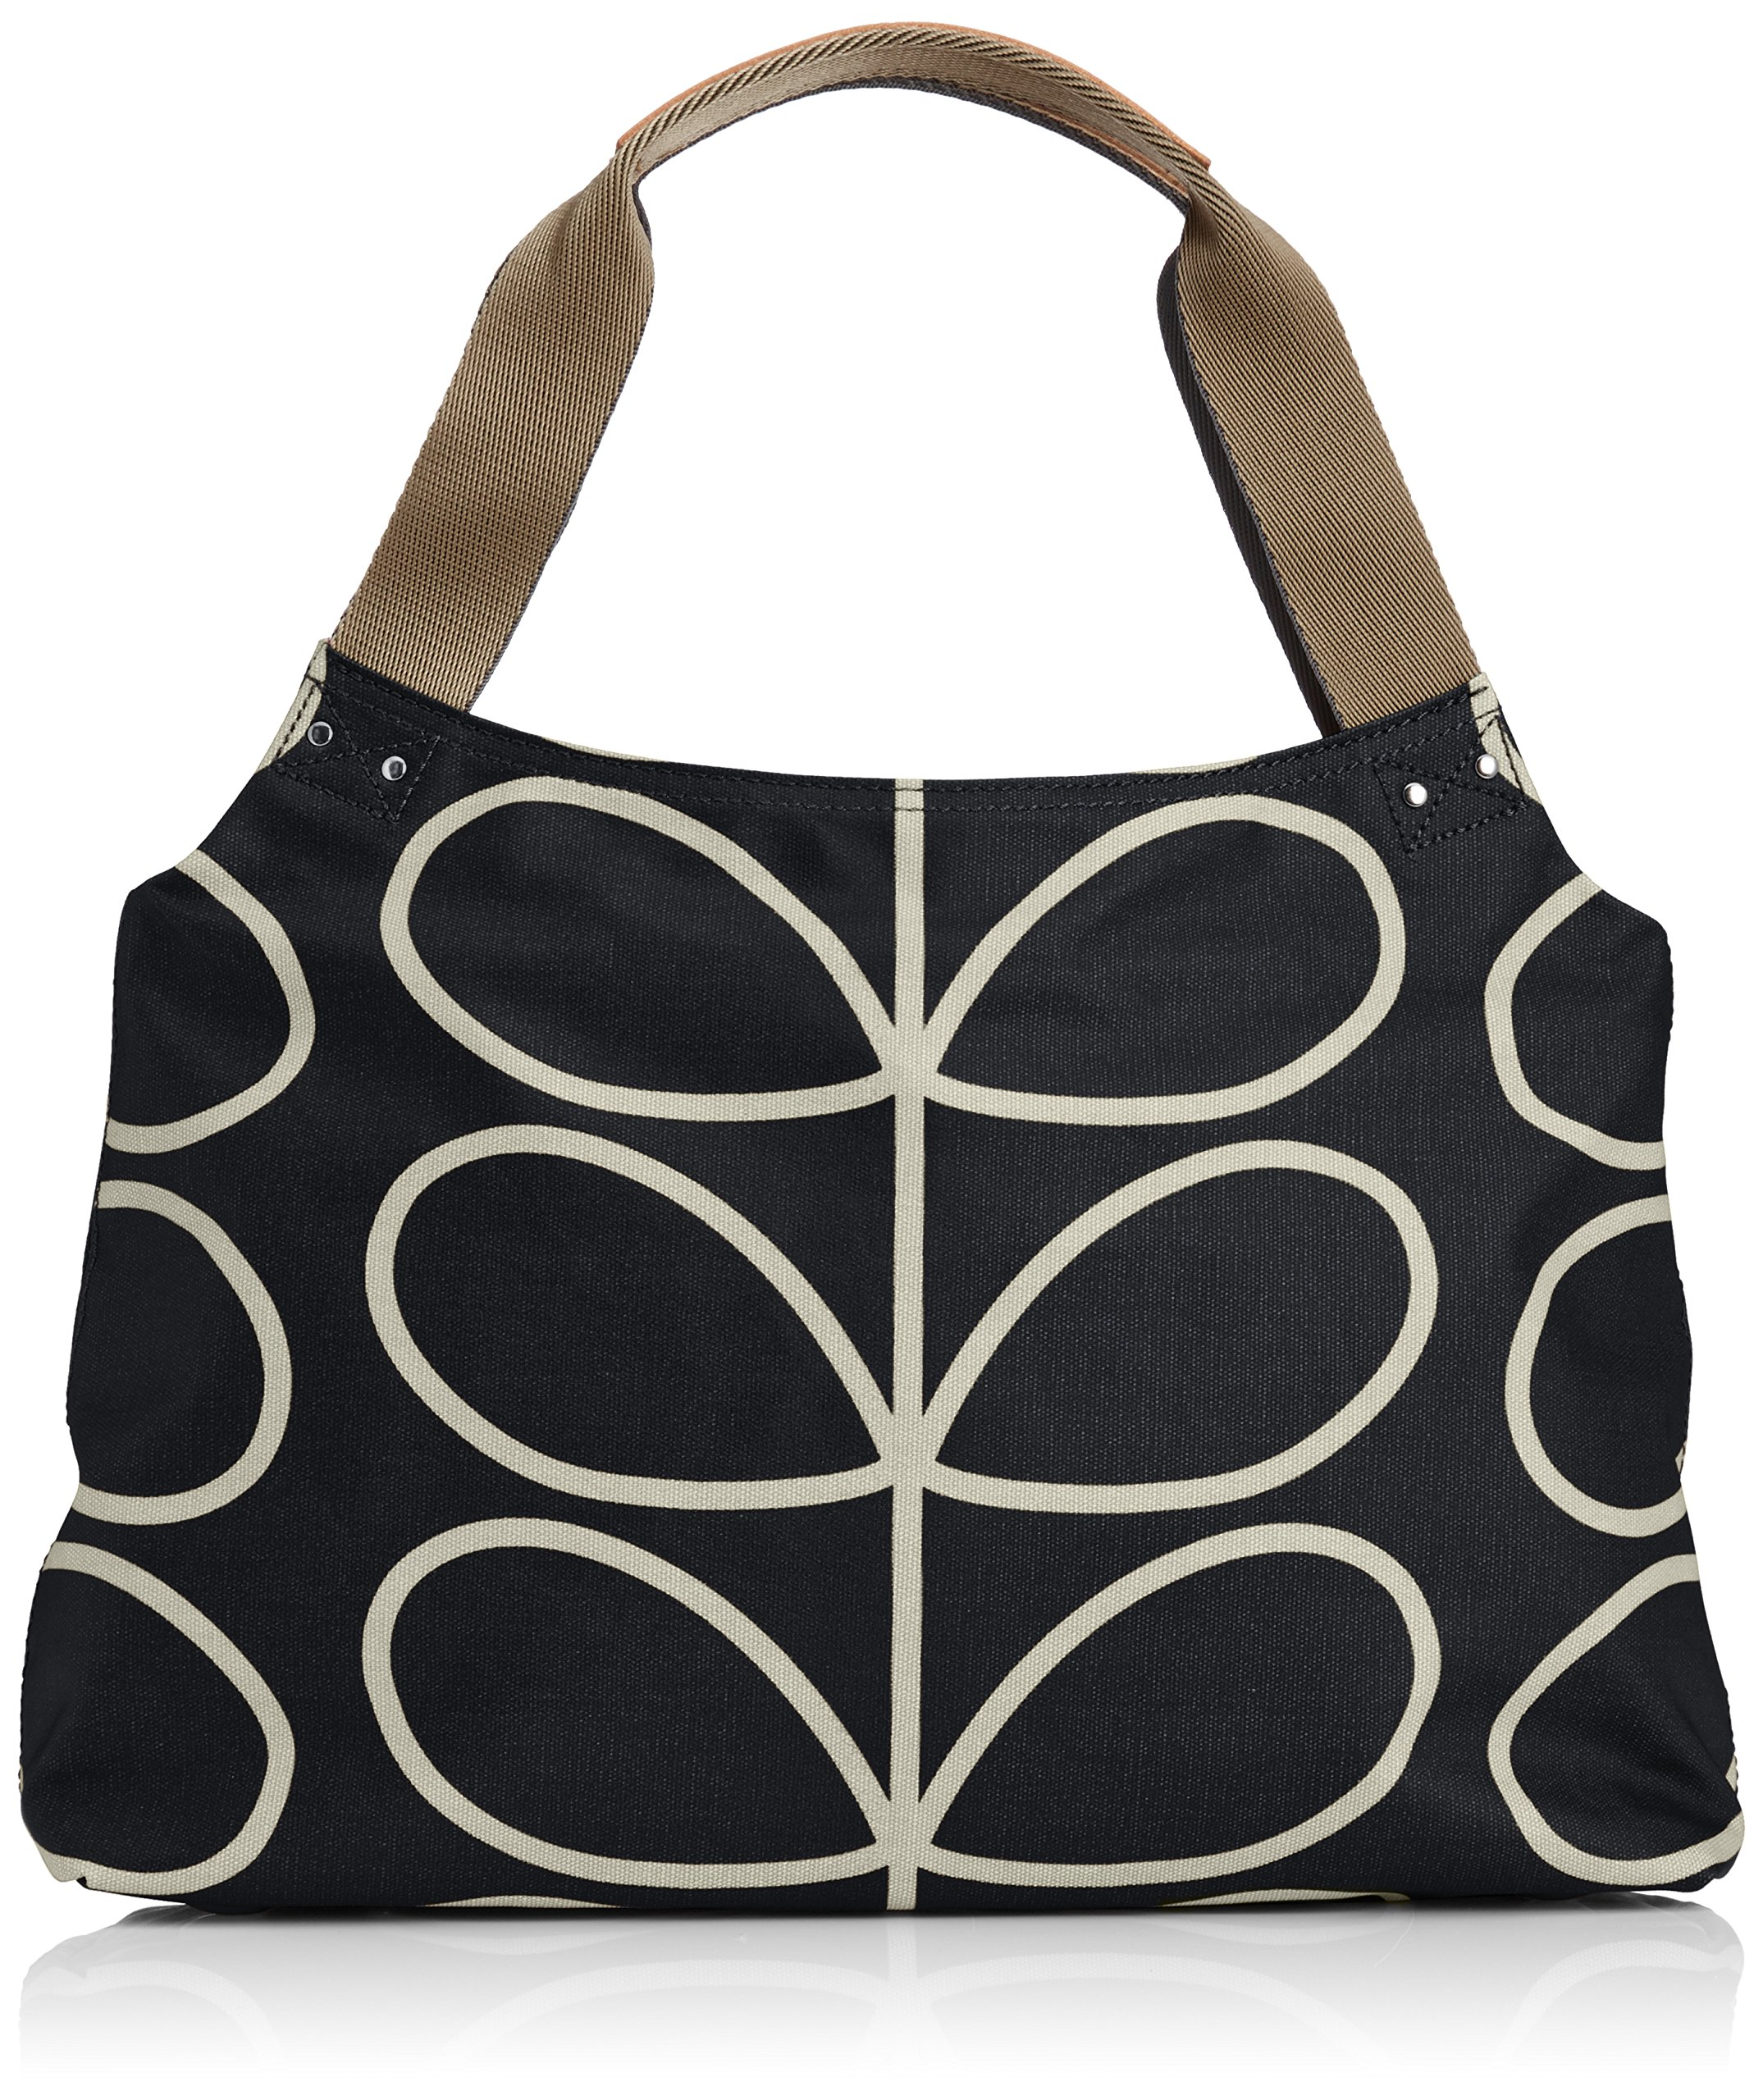 Orla Kiely Core Linear Classic Zip Shoulder Bag, Black/Cream, One Size